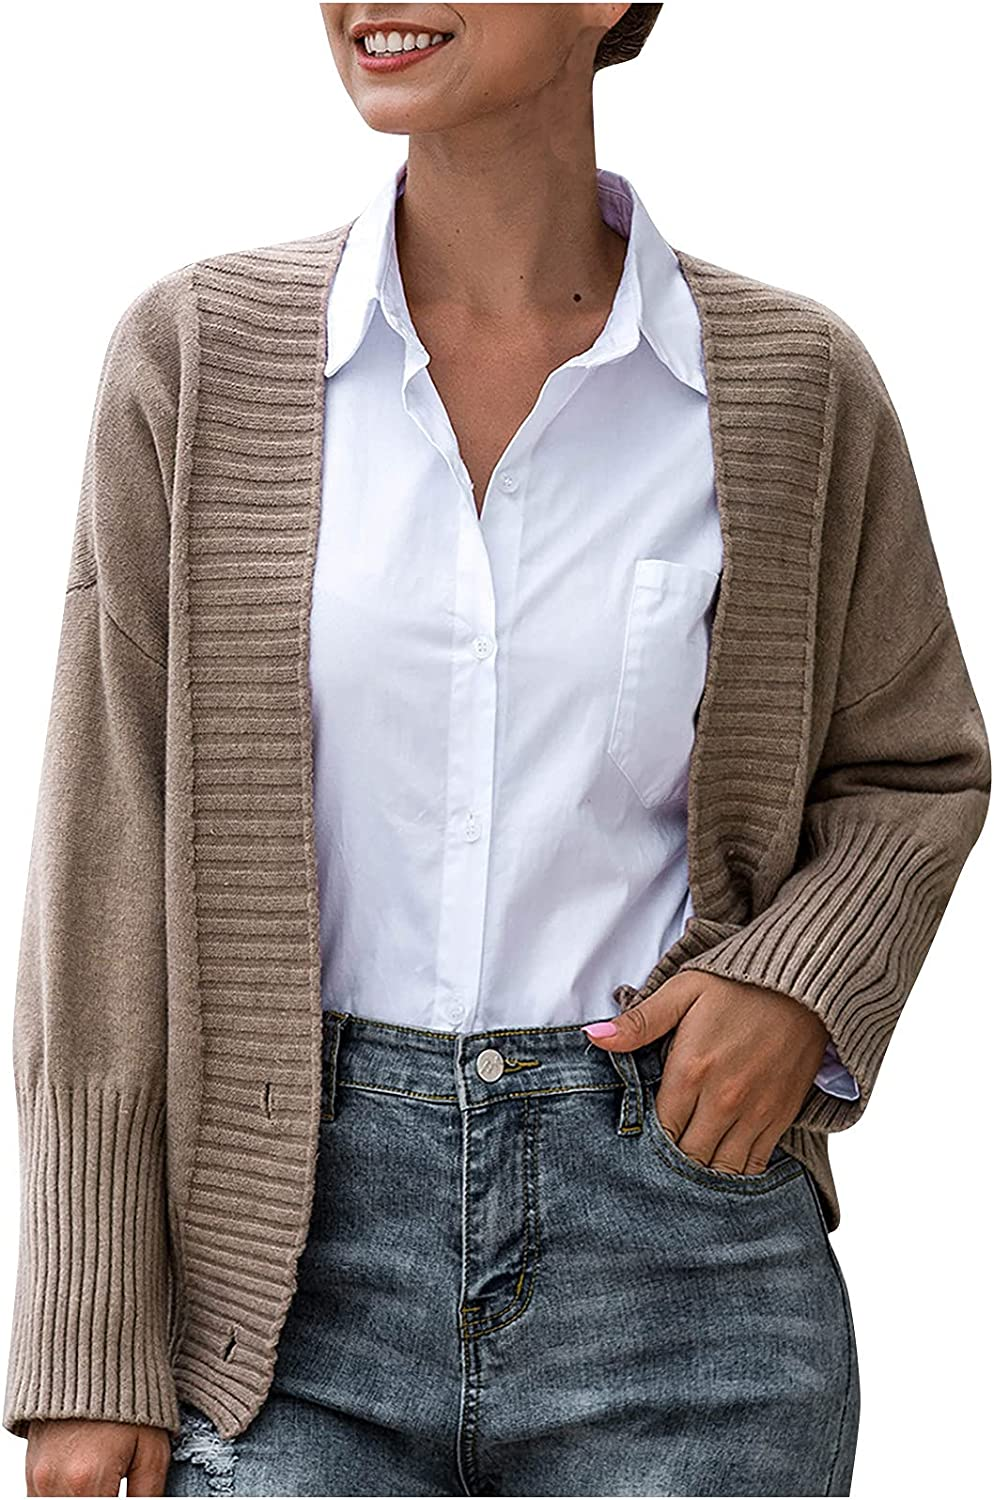 Women's Knitted Sweater Cardigan Casual Button Down Knit Long Cardigans Winter Comfy Plain Color Thick Sweaters